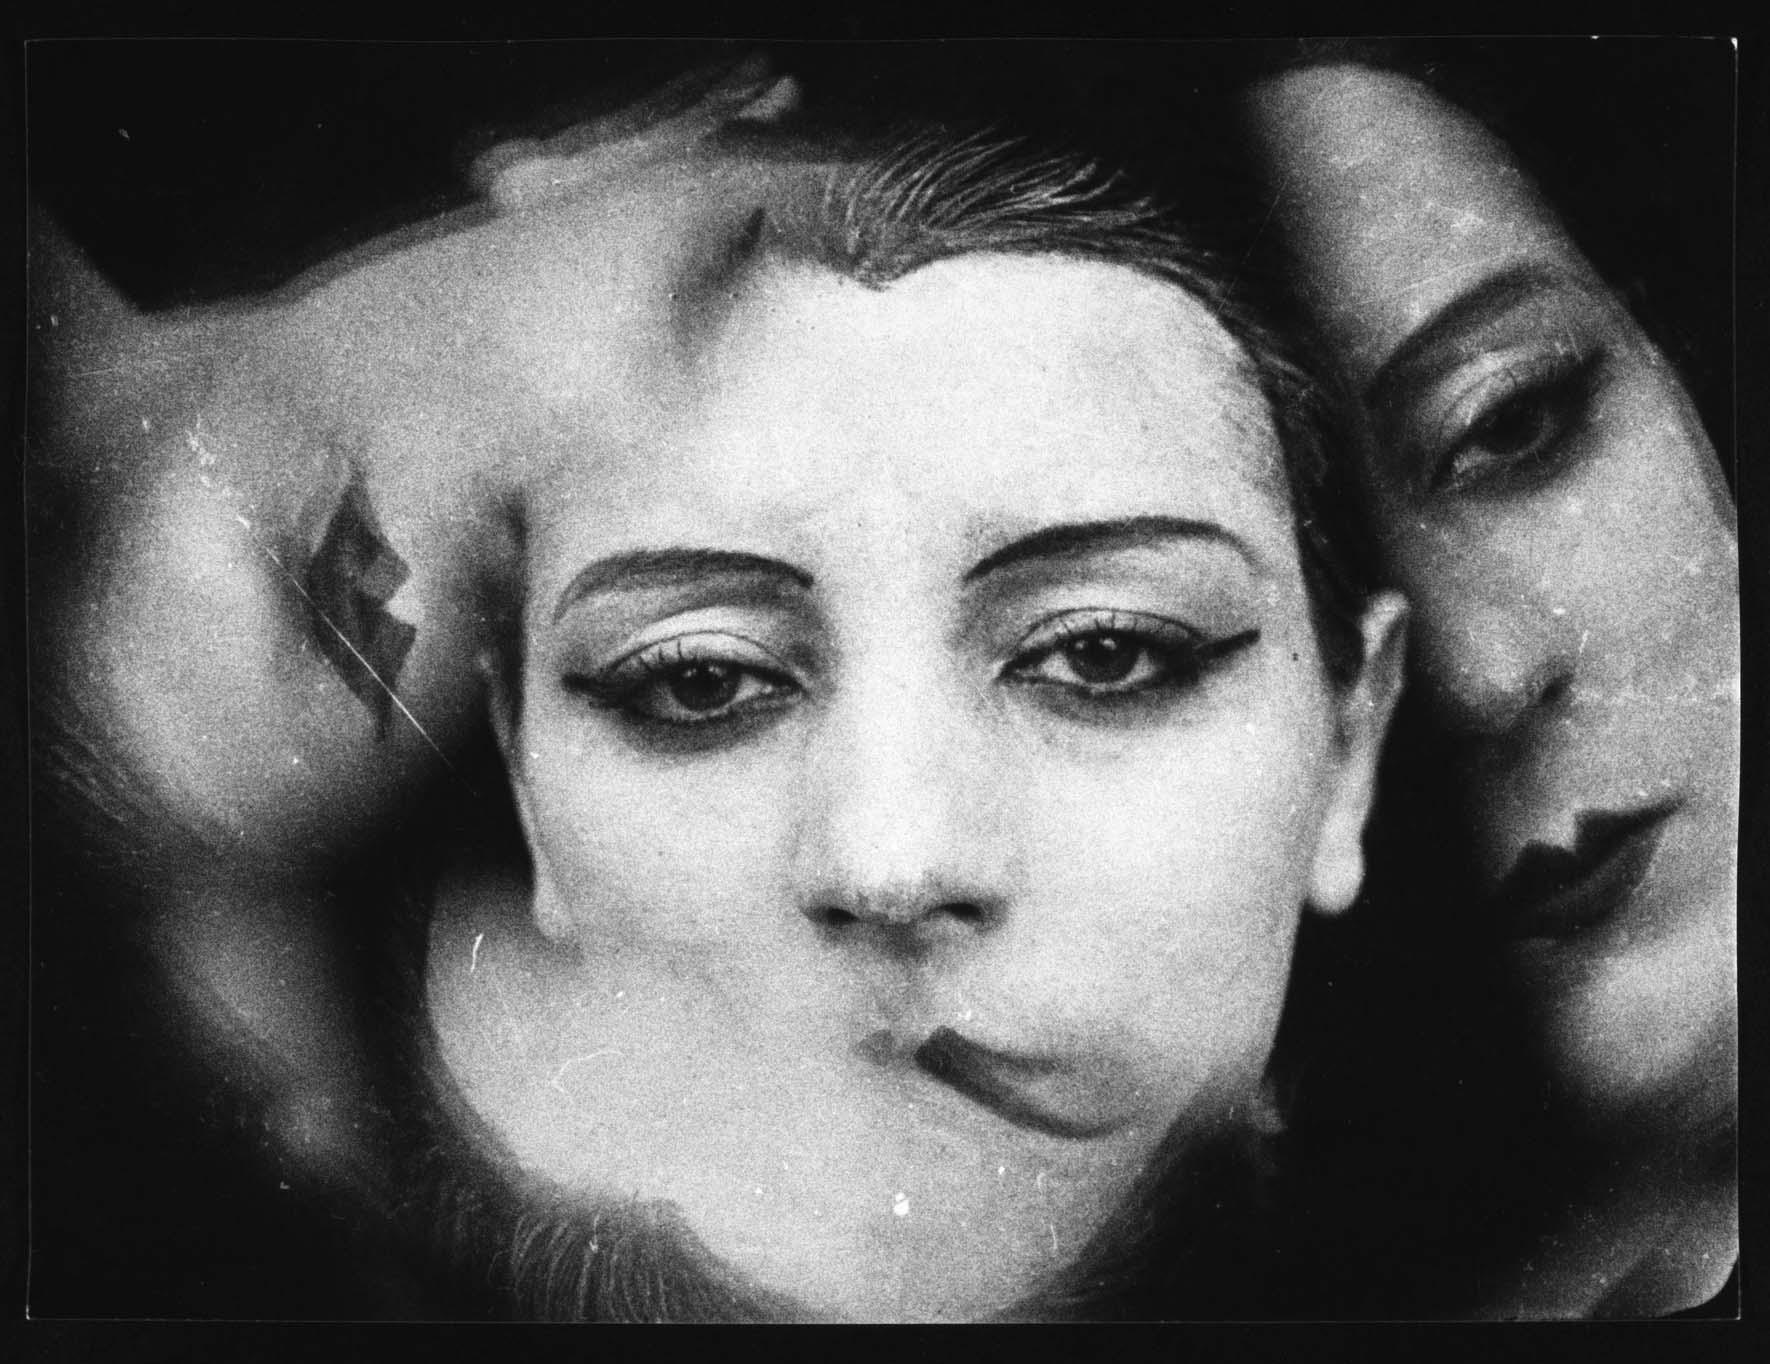 man ray essay Man ray was known for experimenting with everything in artwork he accumulated many famous friends such as georges braque, virginia woolf, pablo picasso, max ernst, james joyce, ernest hemmingway, salvador dali and the list goes on.